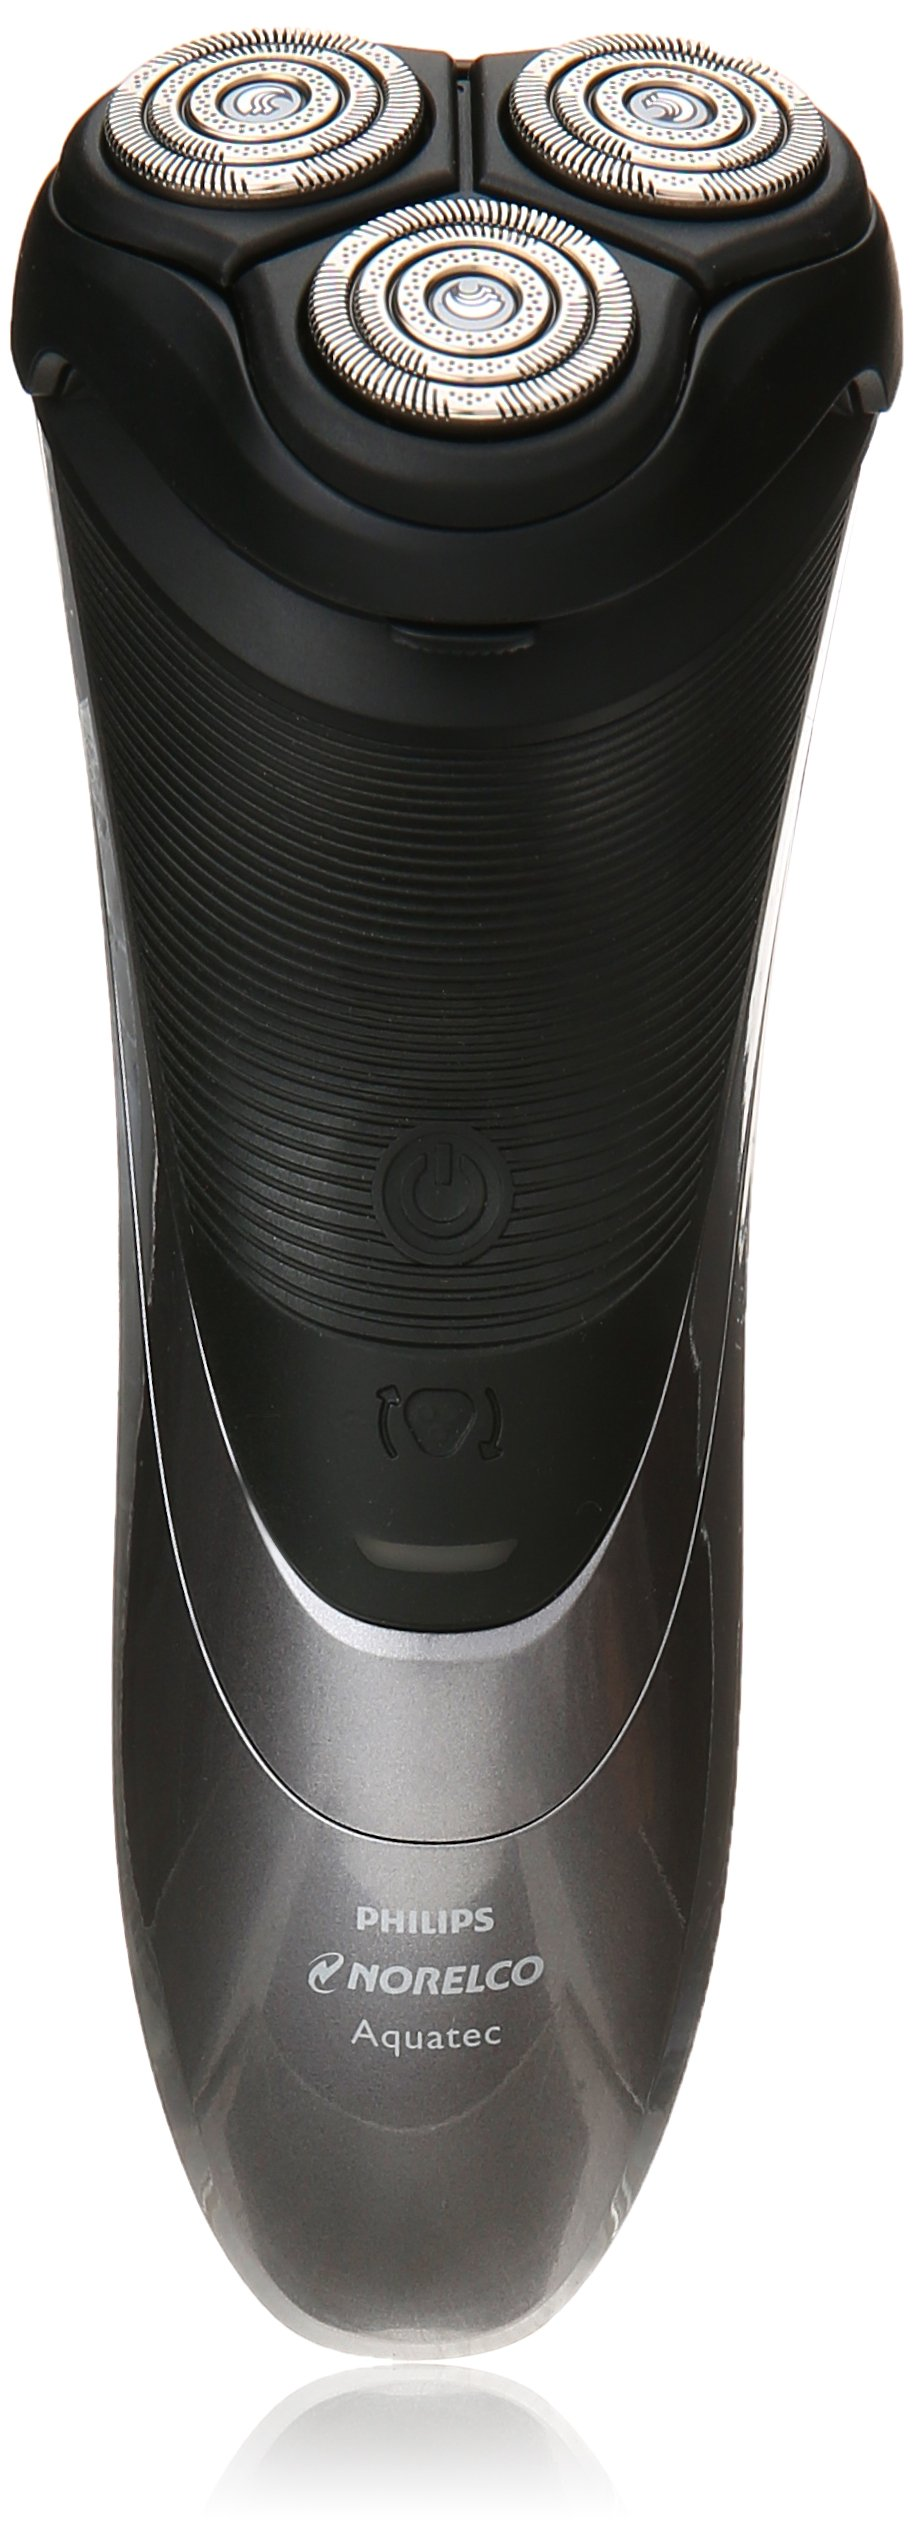 Norelco AT922/41 Philips Shaver 5200, 1.18 Pound